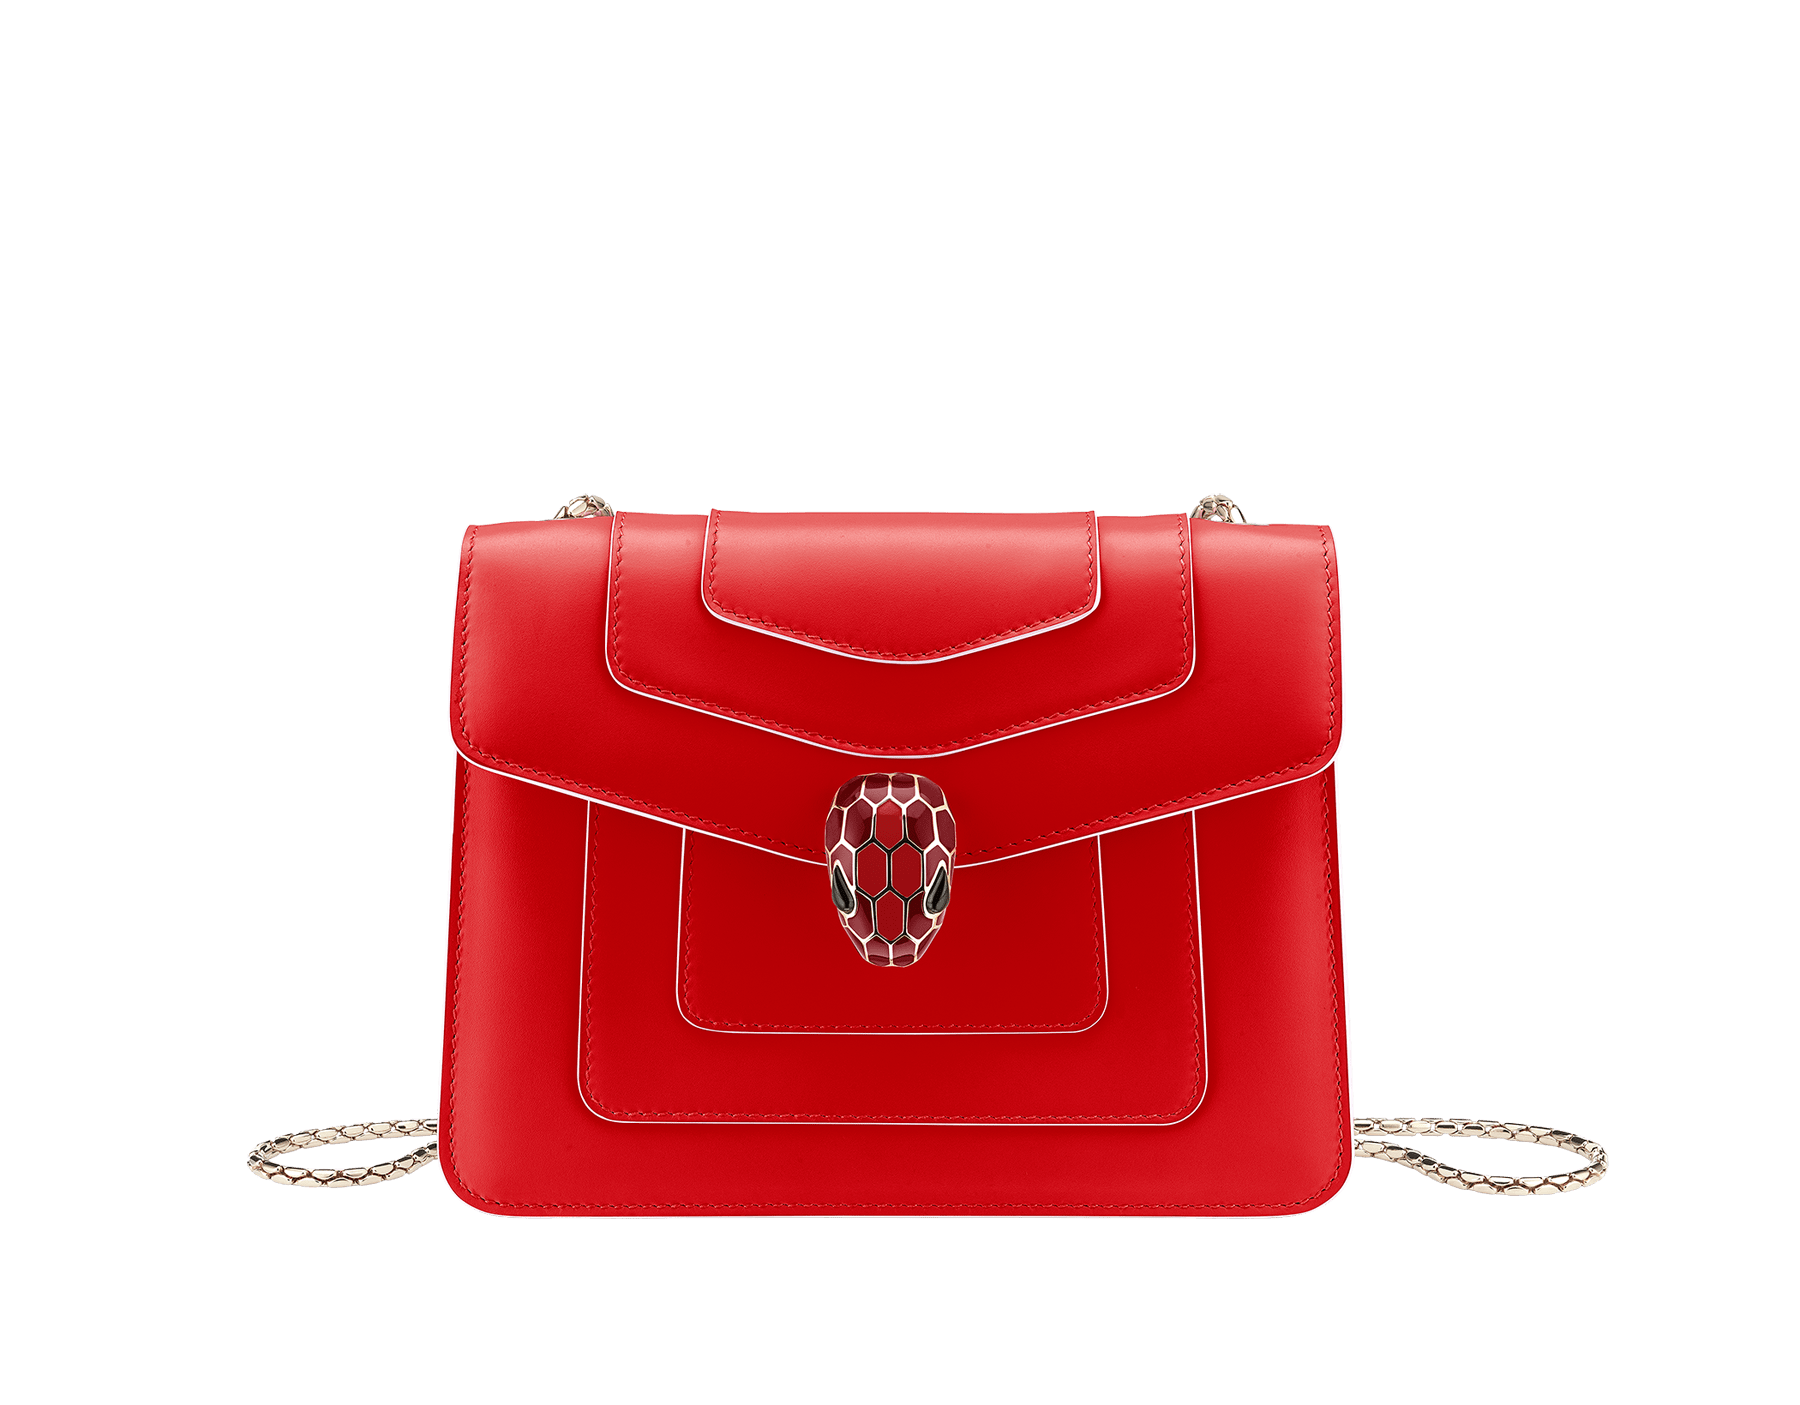 Serpenti Forever crossbody bag in Roman garnet calf leather, with rosa di francia calf leather sides. Iconic snakehead closure in light gold plated brass embellished rosa di francia and black enamel and black onyx eyes . 422-BCLb image 1